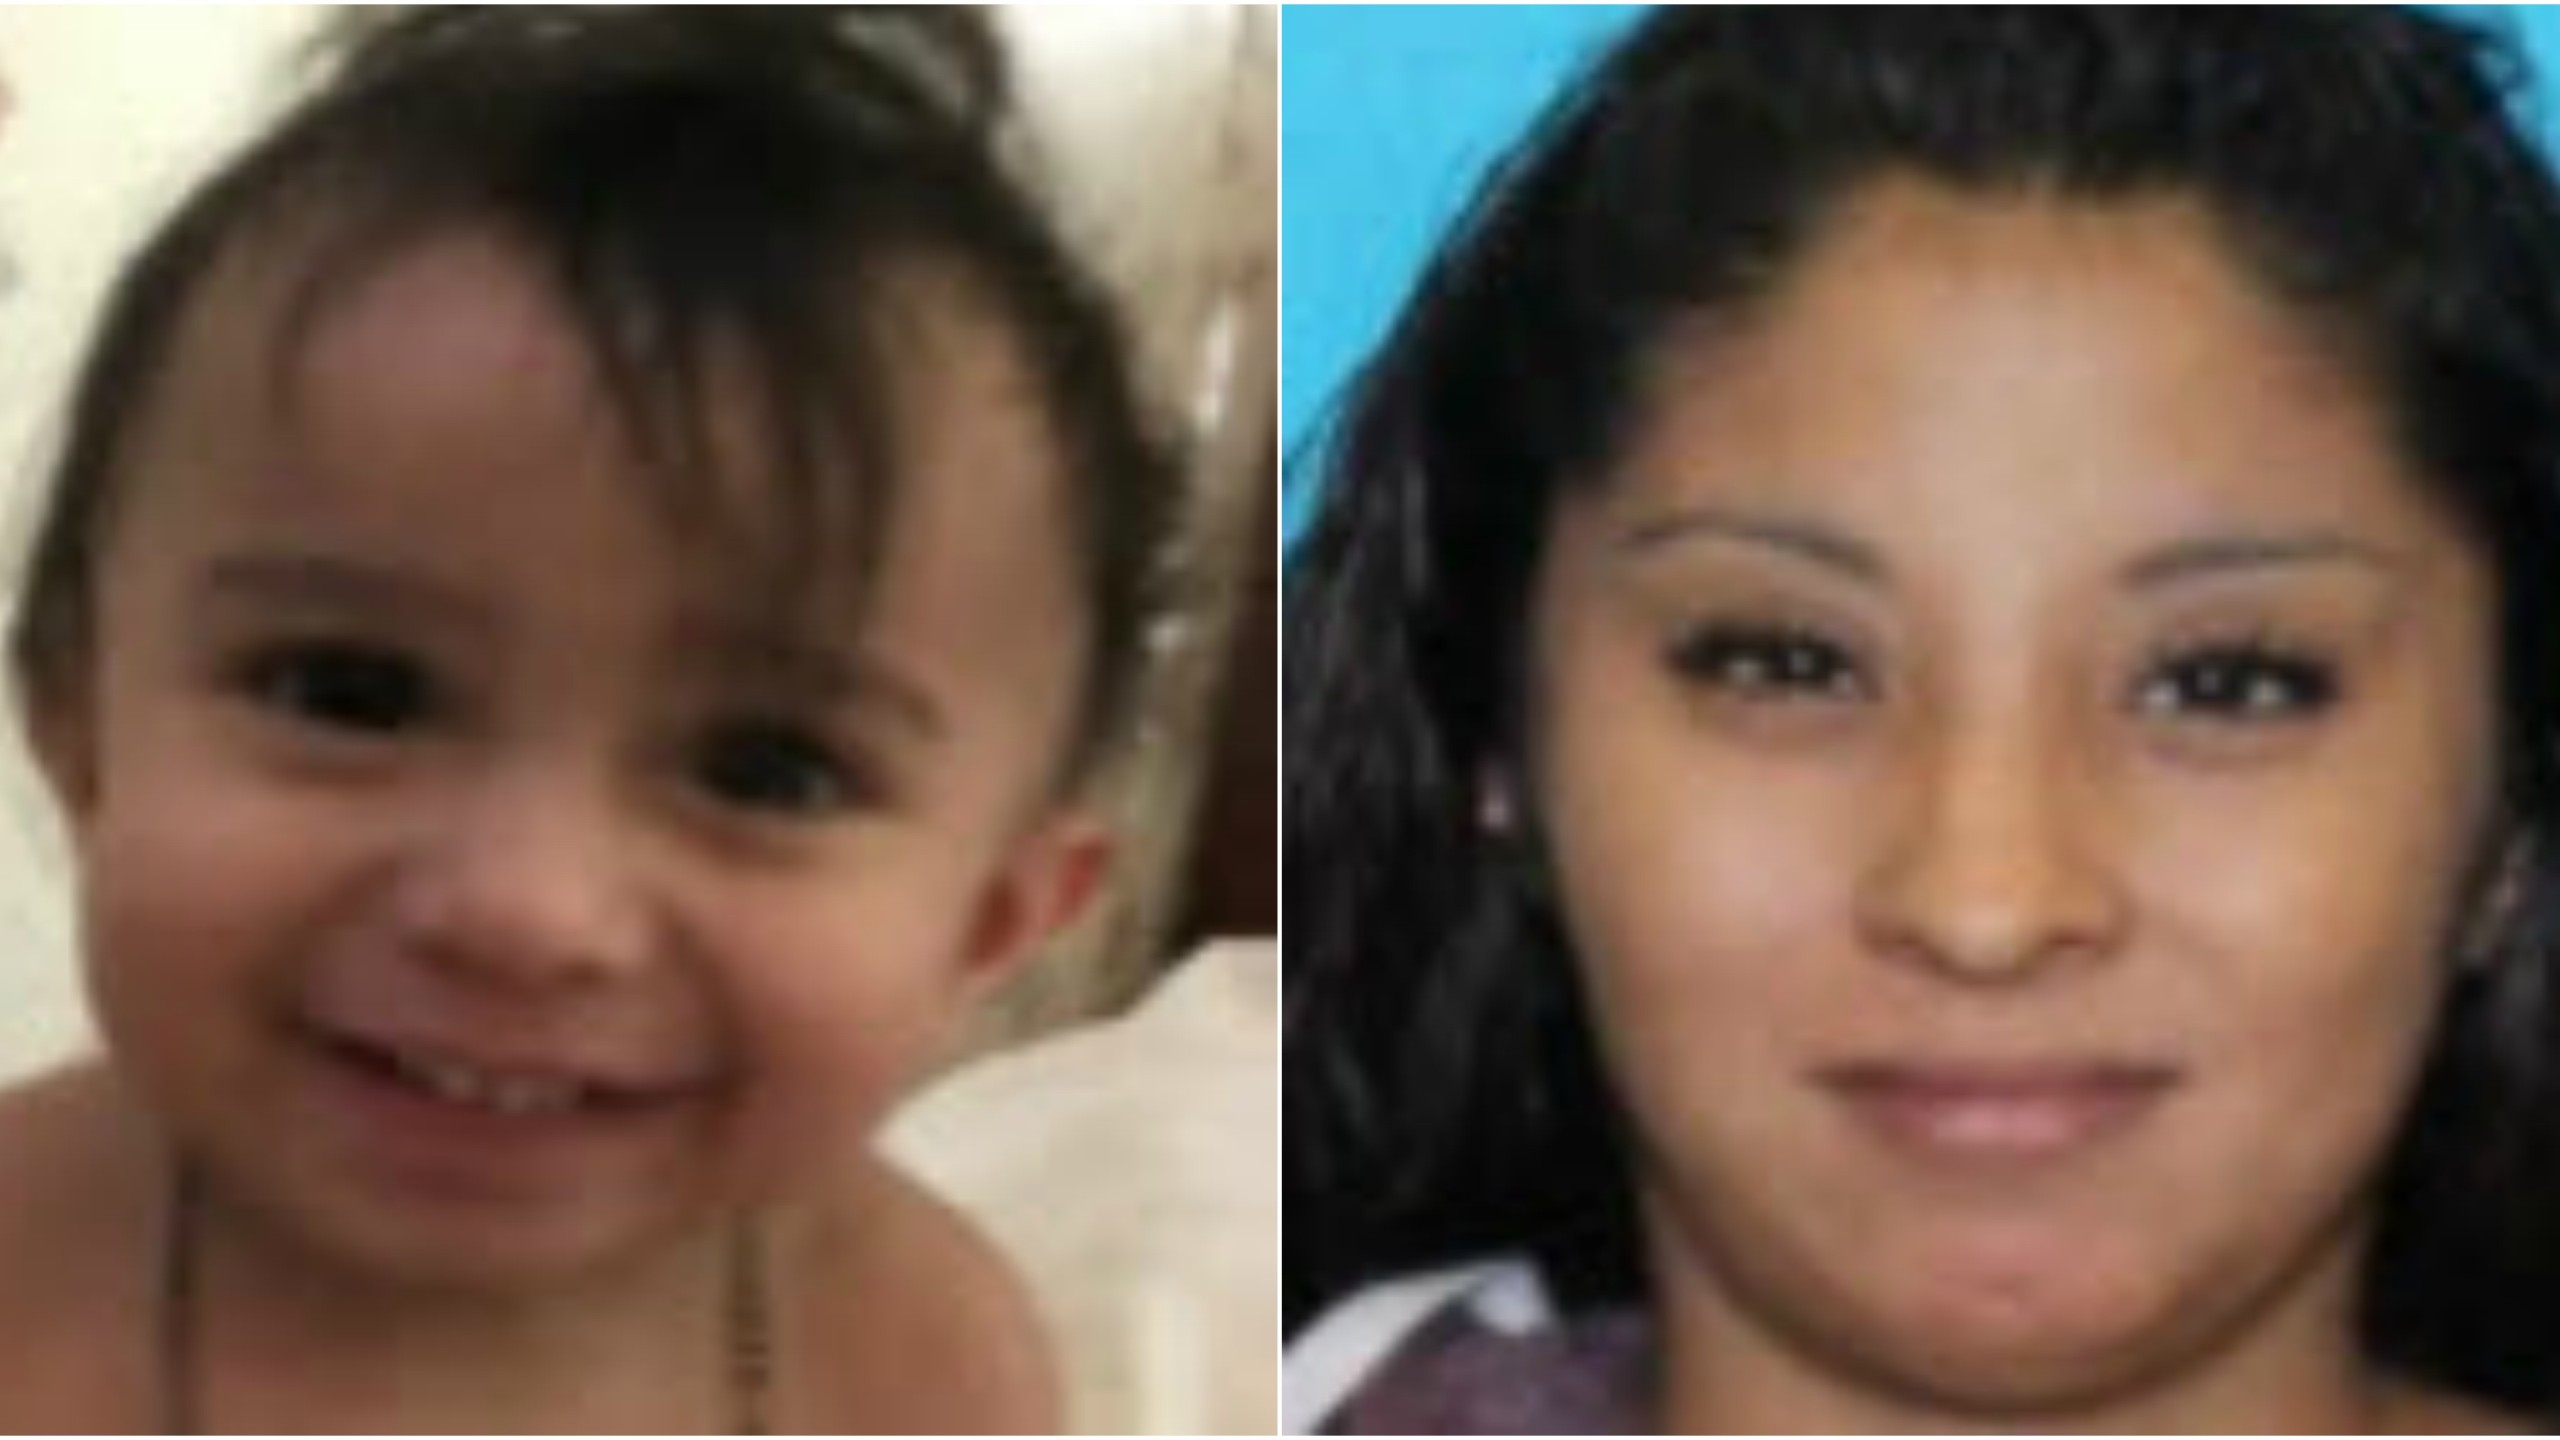 Amber Alert Issued For 14 Month Old Texas Boy Believed To Be In Danger